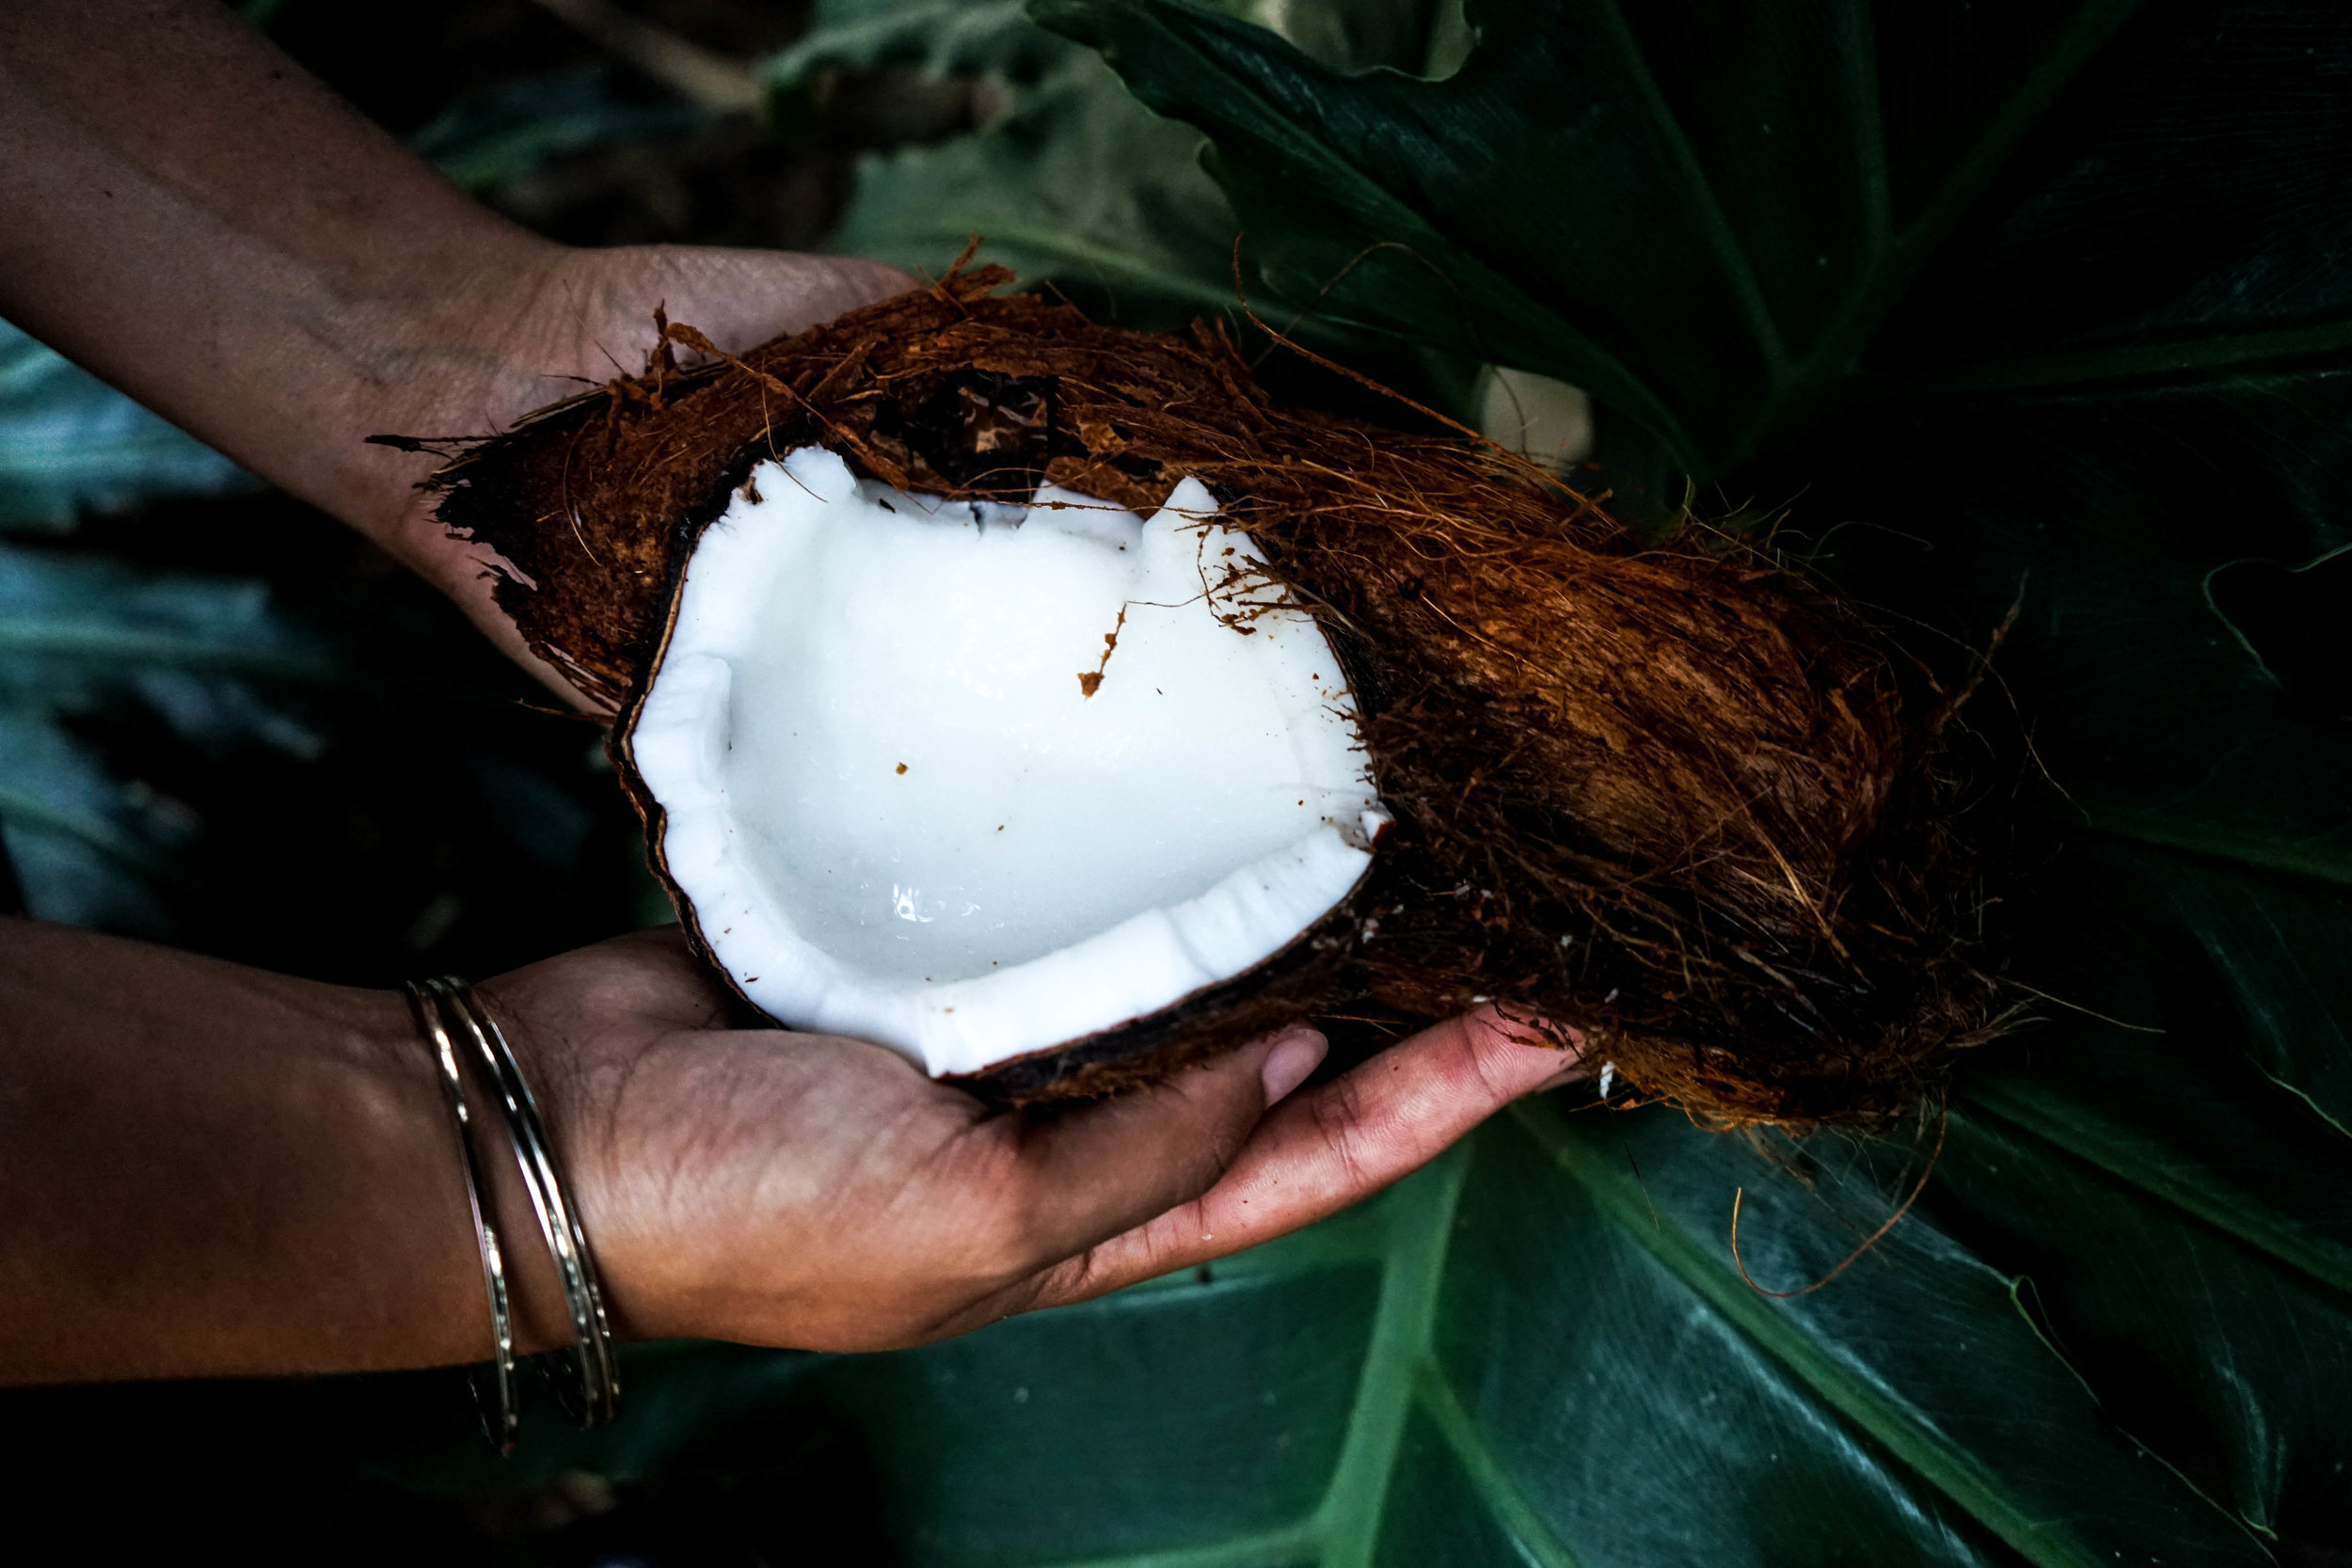 Coconut Oil - Coconut Oil is beloved worldwide! Latin American women grow up using it for everything, including nail care, skin care, hair care, and tasty recipes.